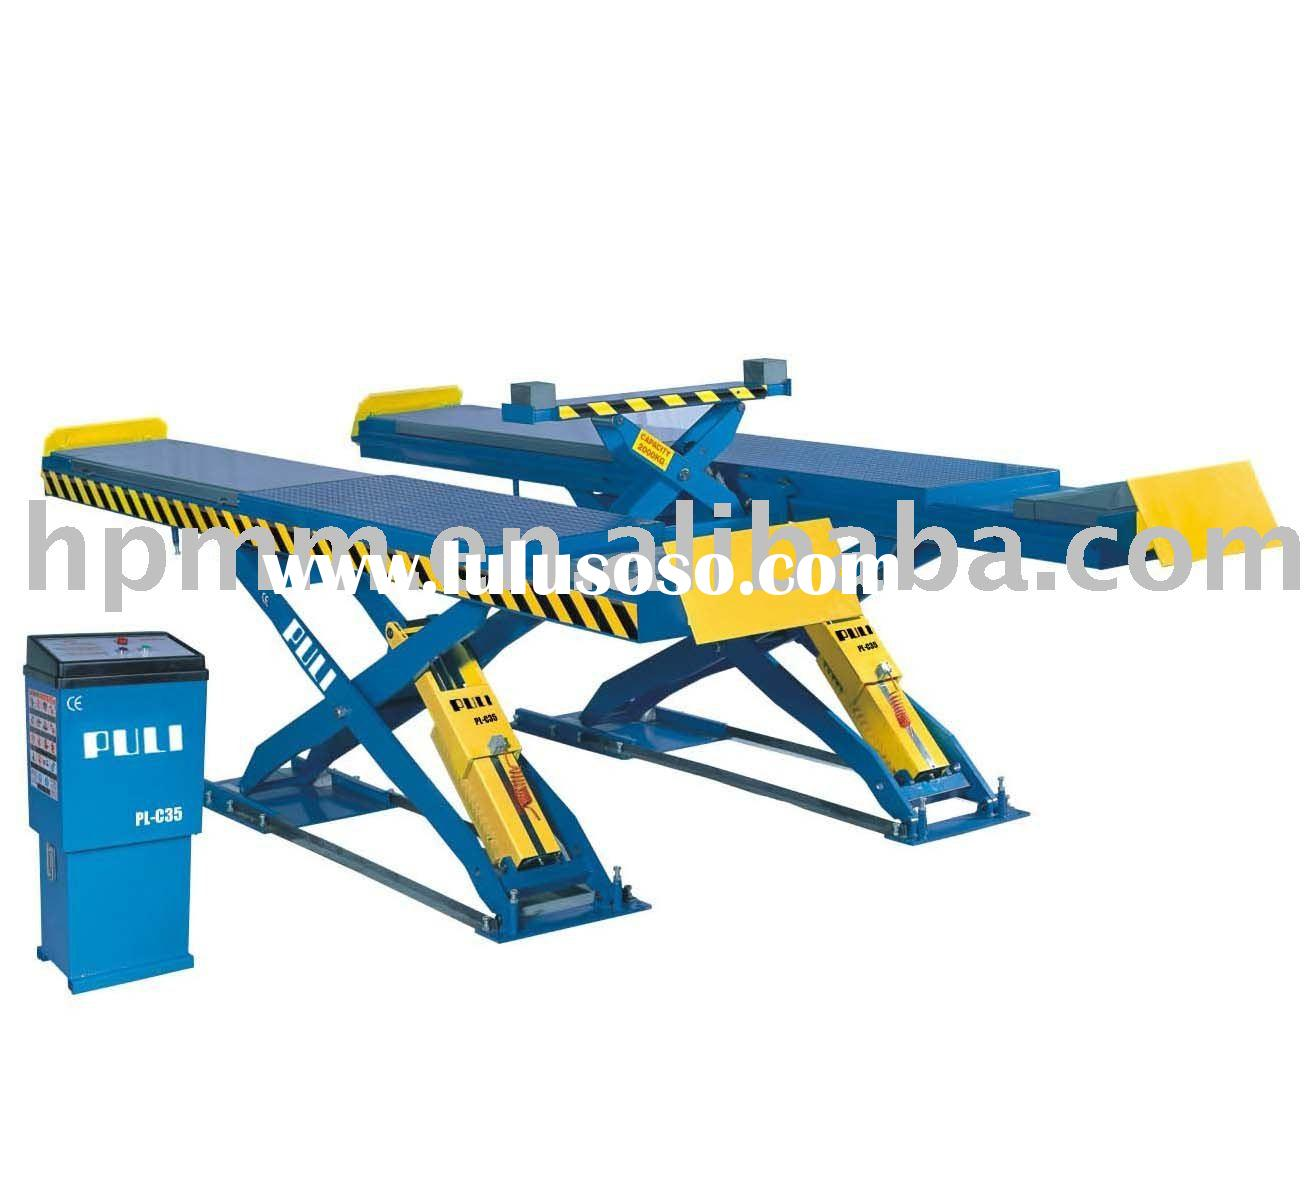 PL-C55 Scissor Lift, Auto car lifts for Wheel Alignment (CE)